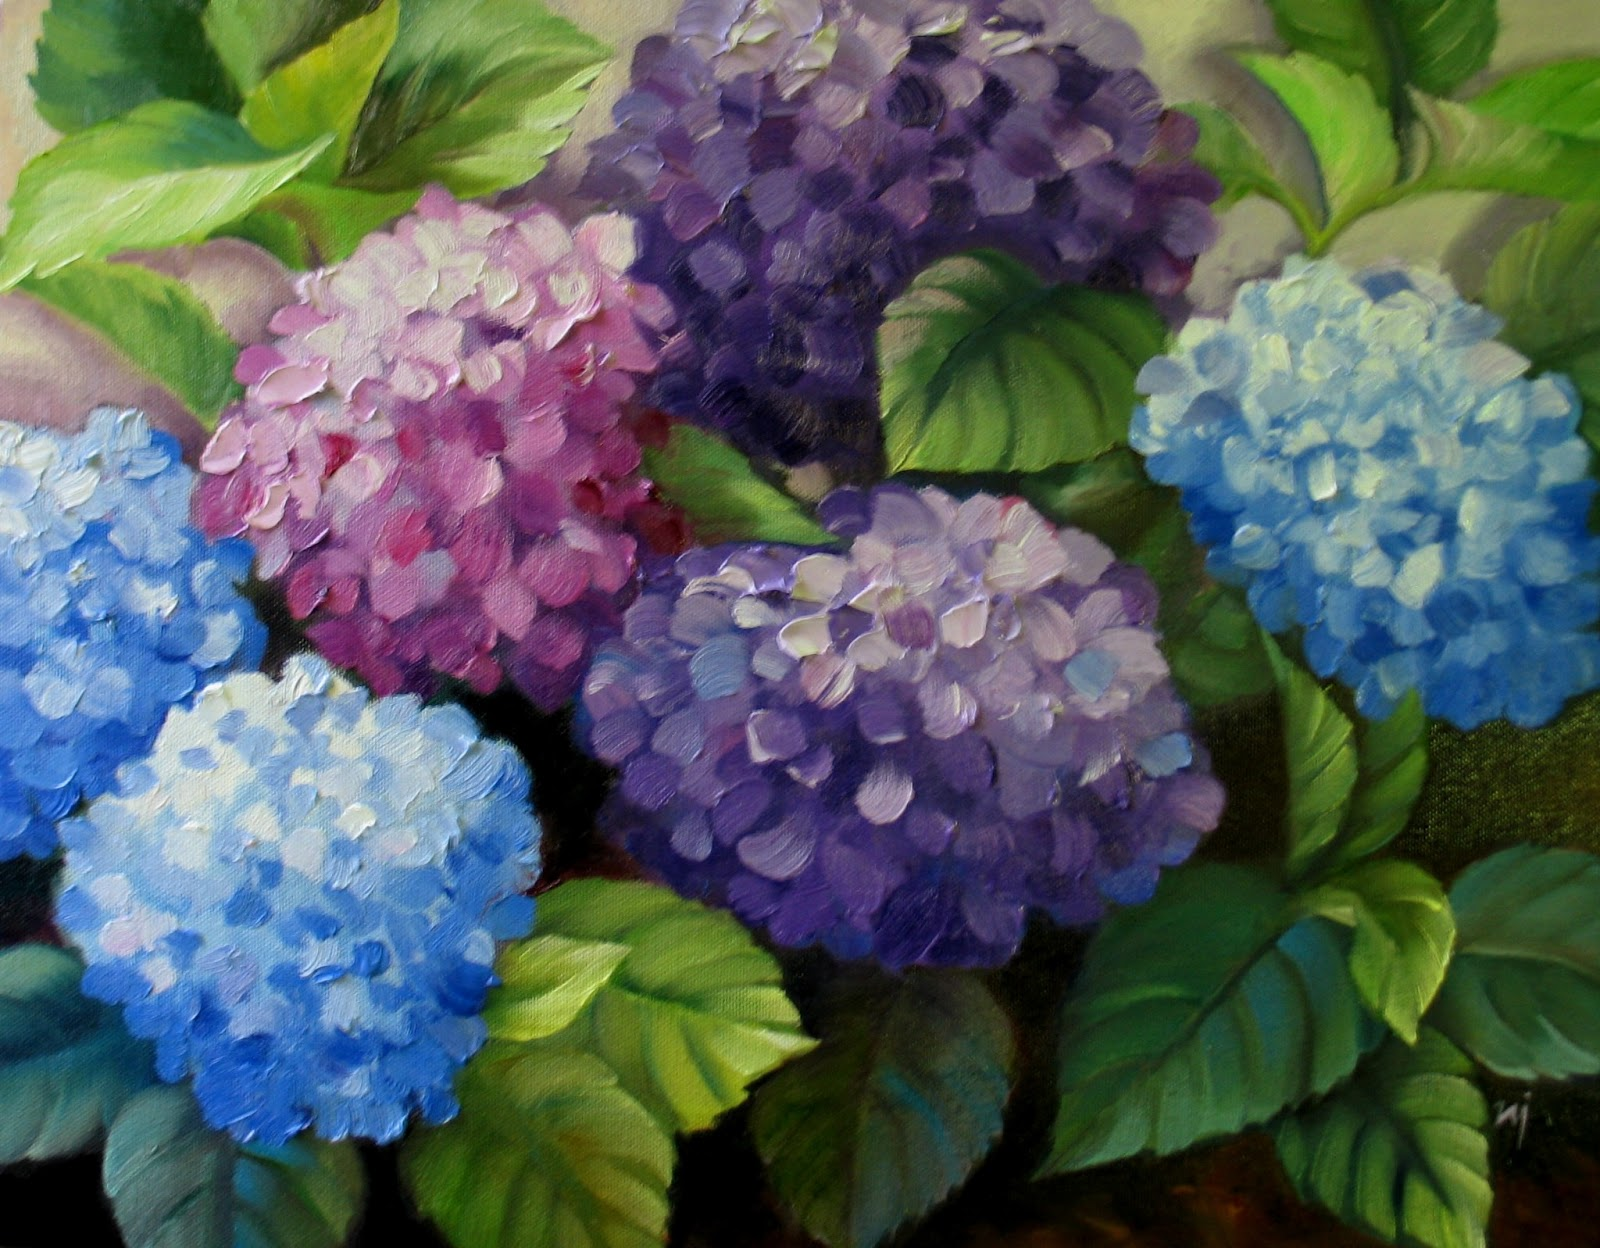 How To Paint Hydrangeas In Acrylics